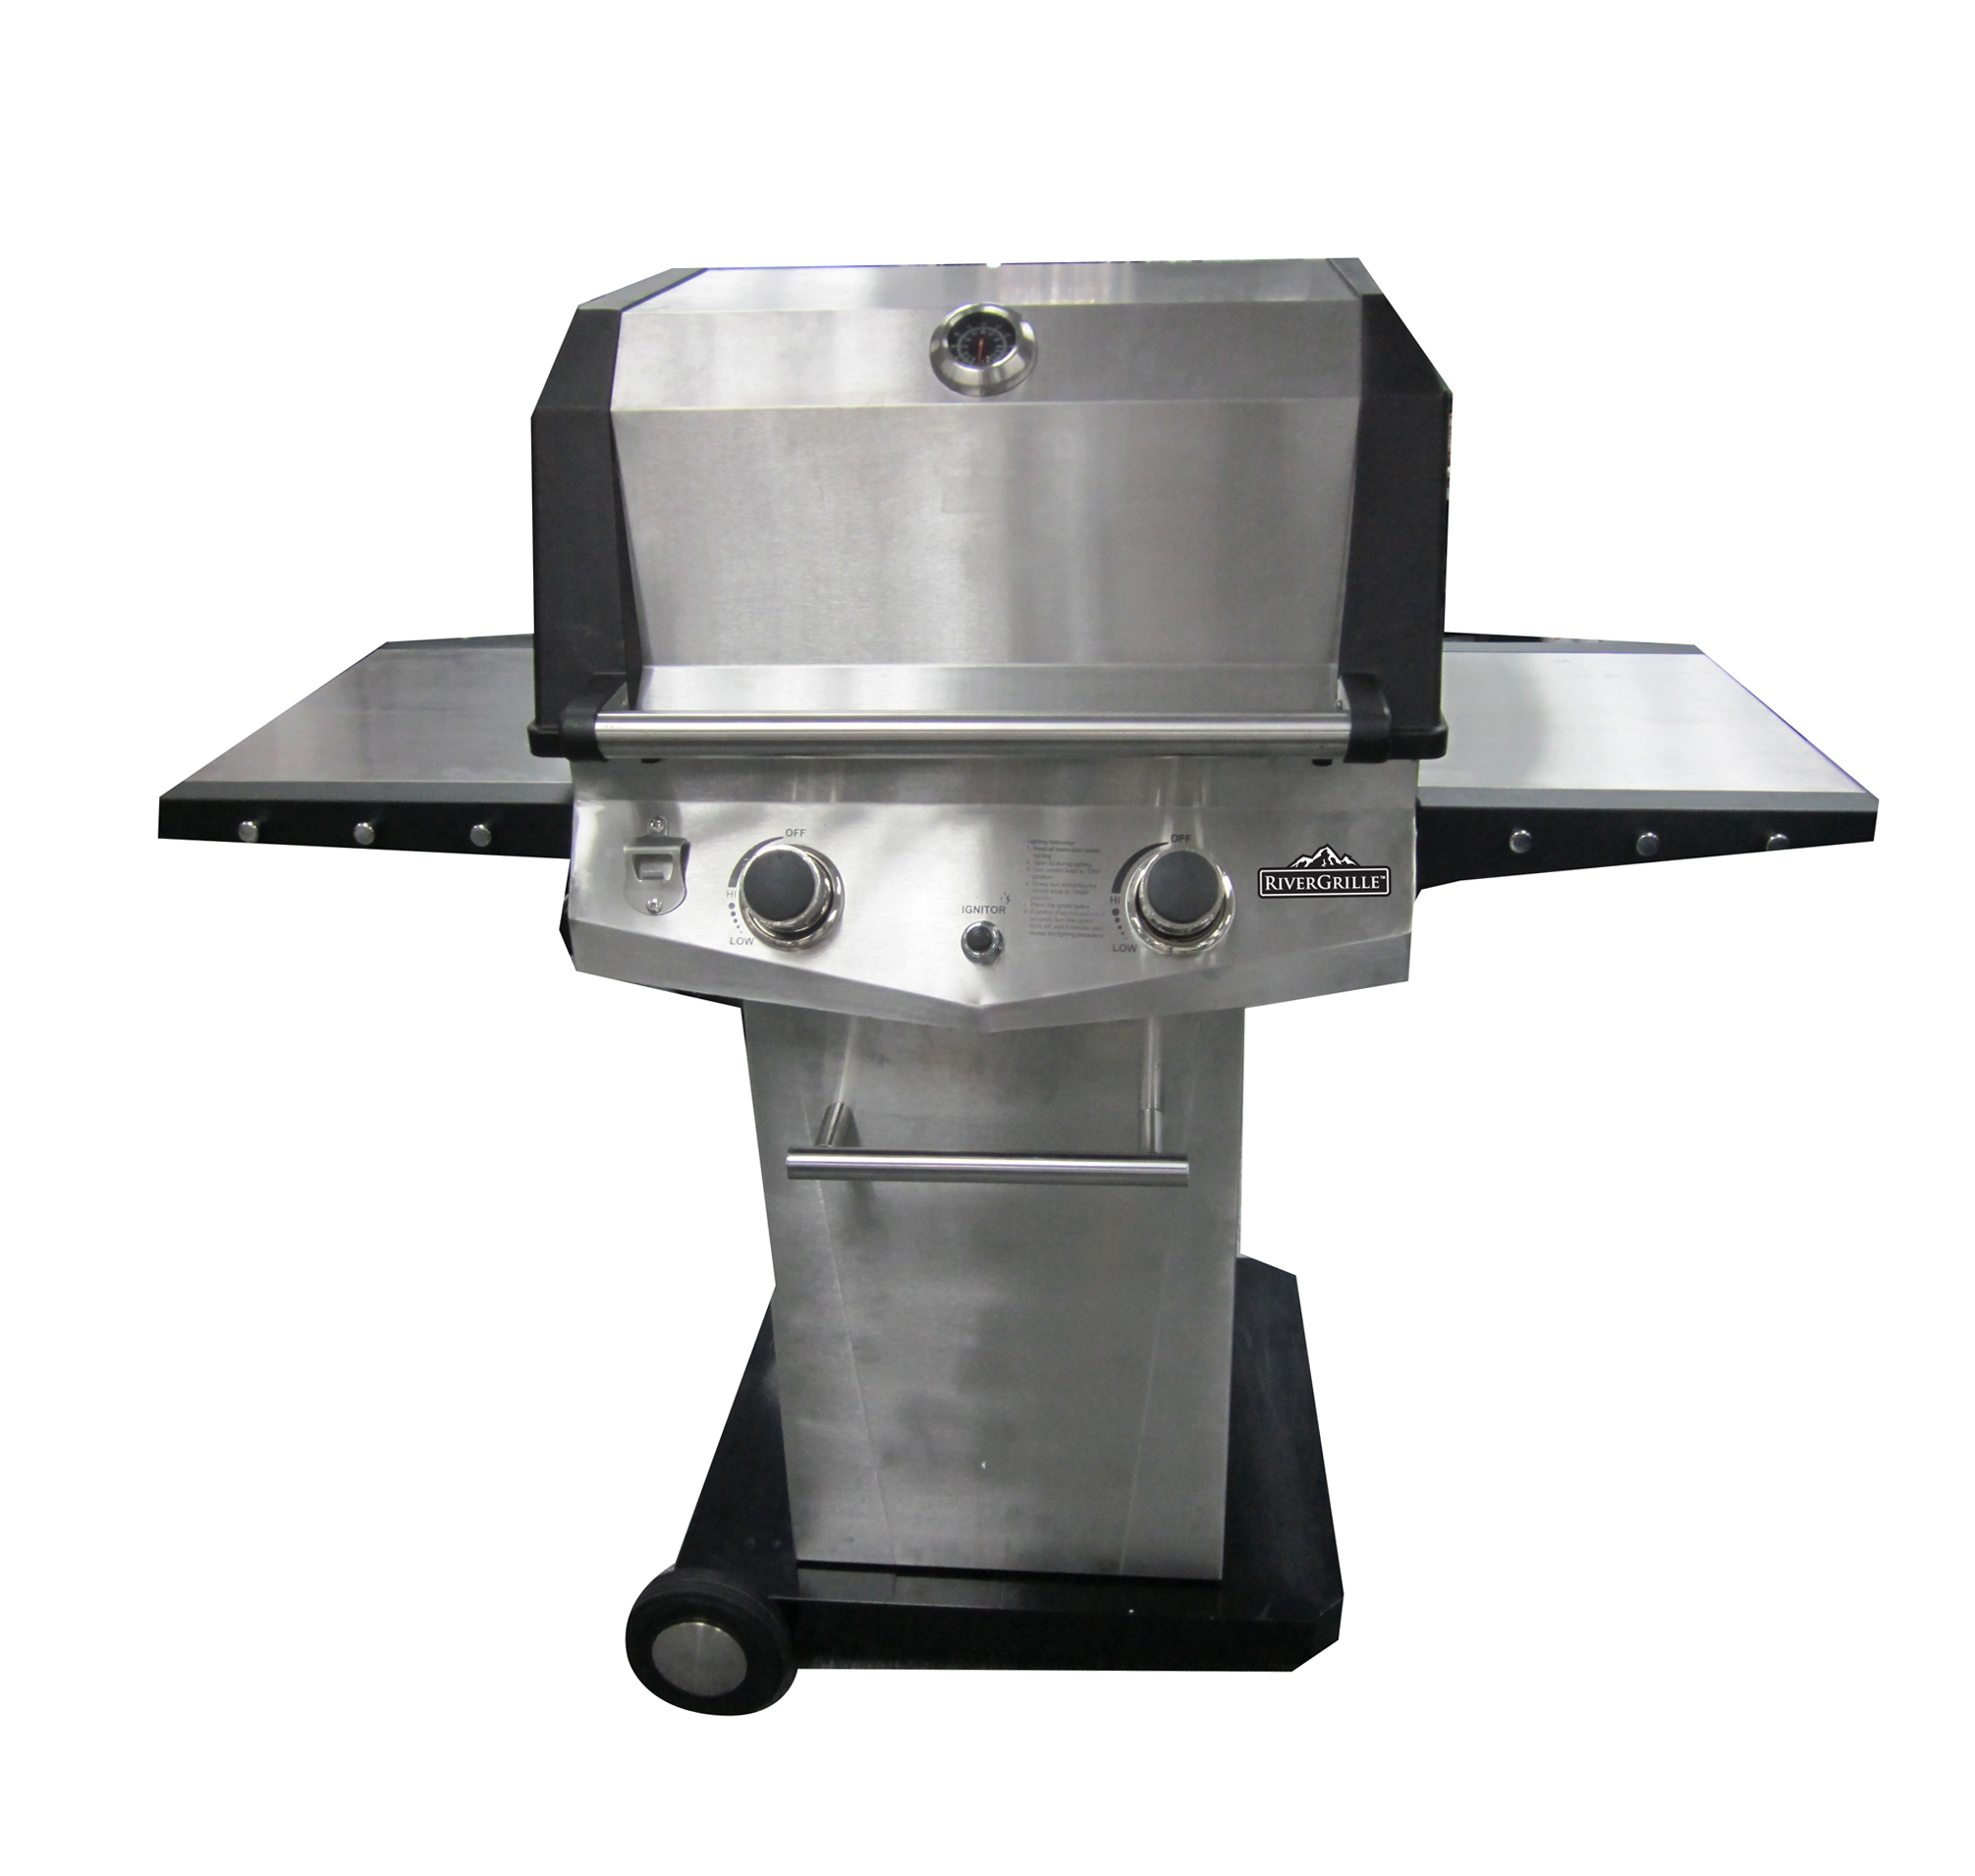 Deluxe 2 Burner Patio gas Grill